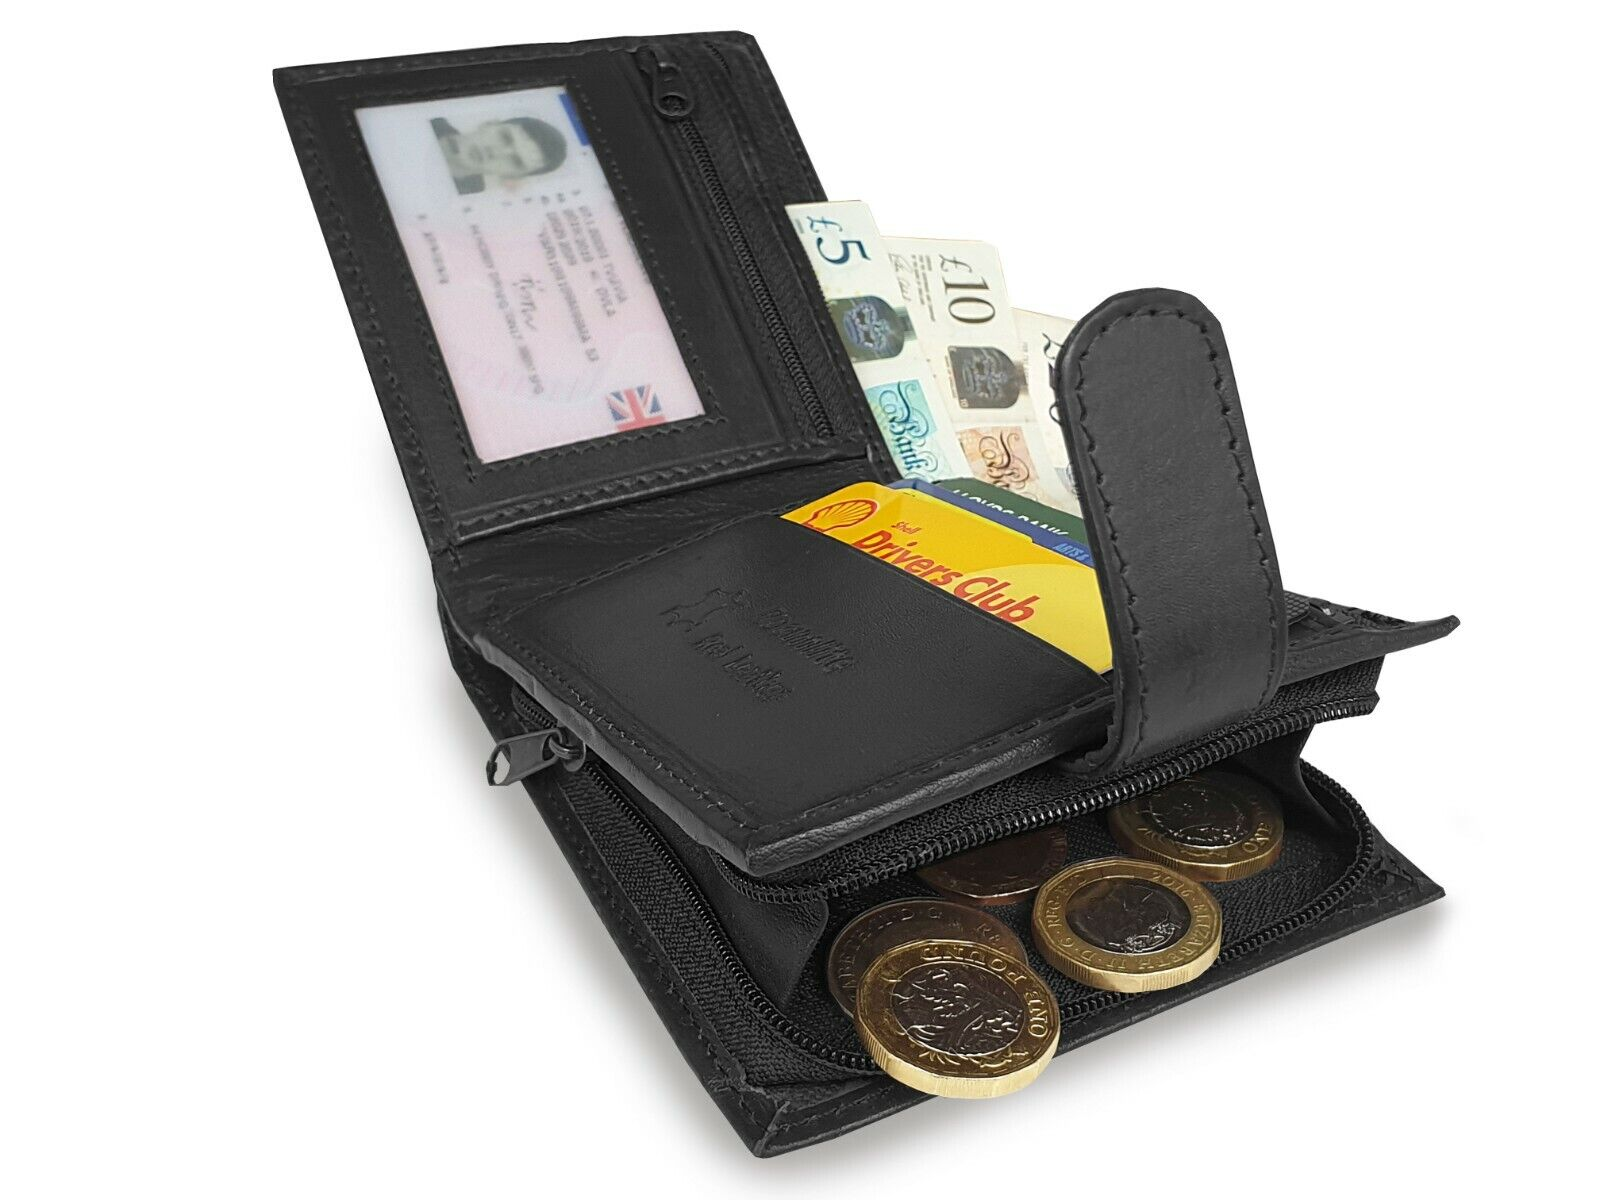 Designer Leather Mens Wallet Zipped Zip Up Note and Coin Pouch Black Roamlite